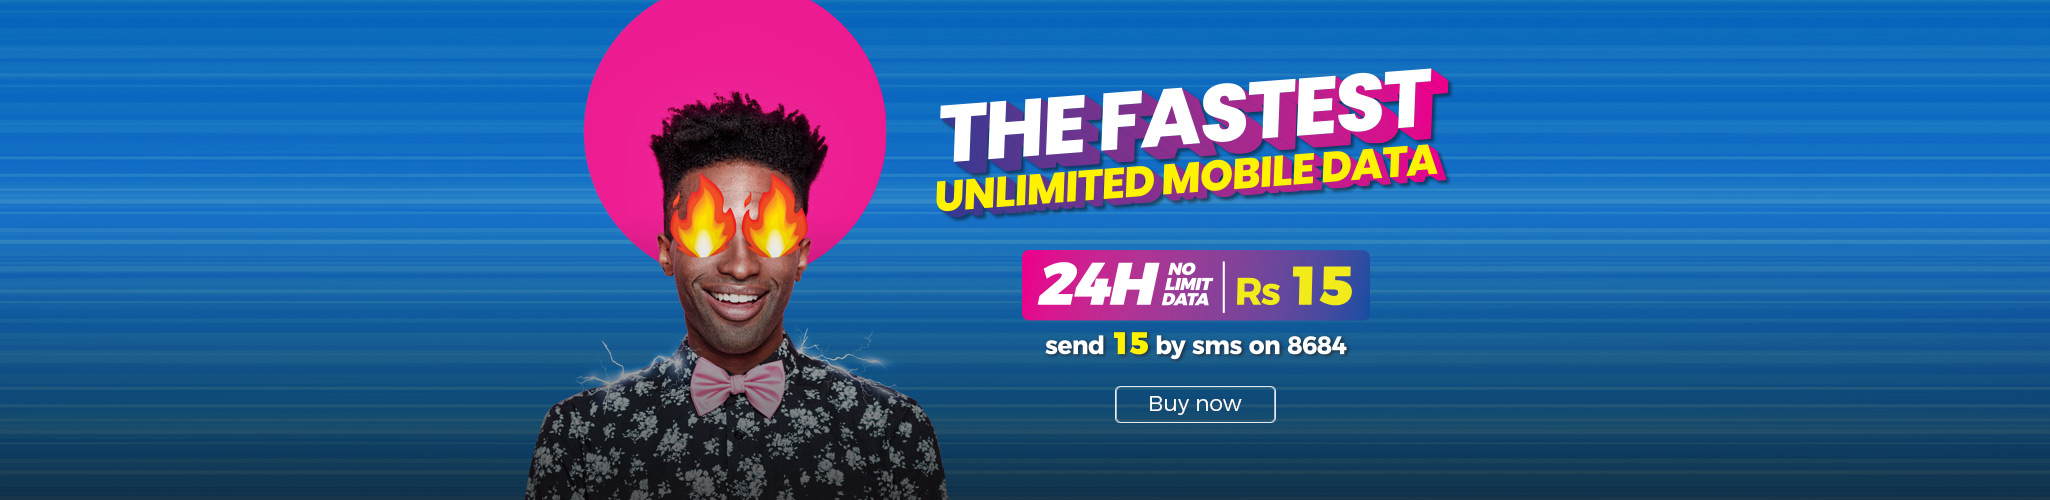 my.t mobile banner2